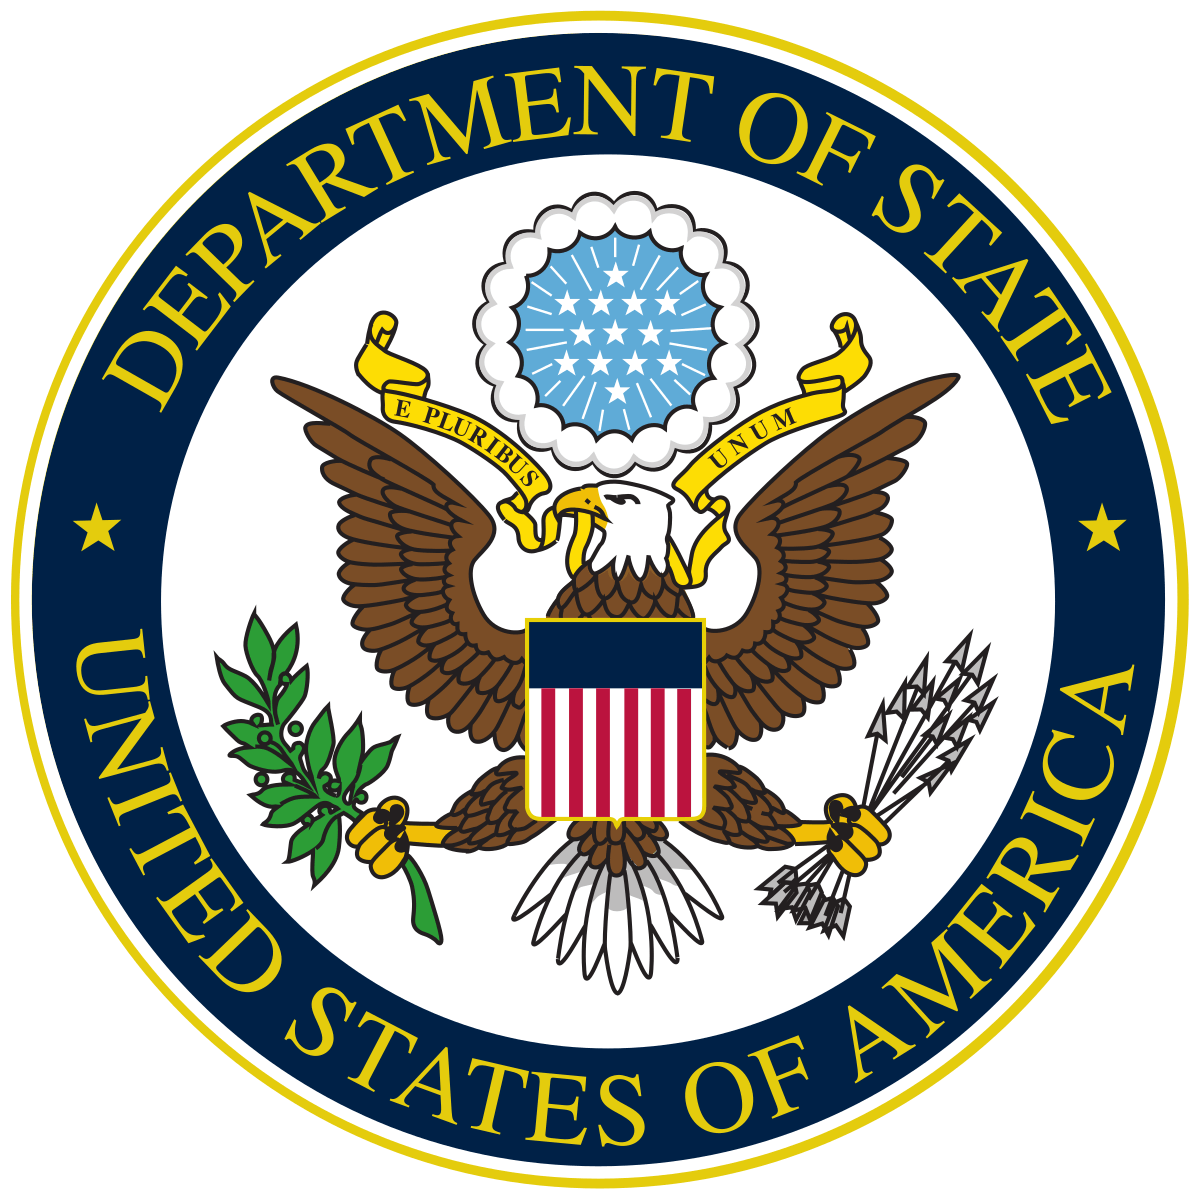 United States of America Department of State logo